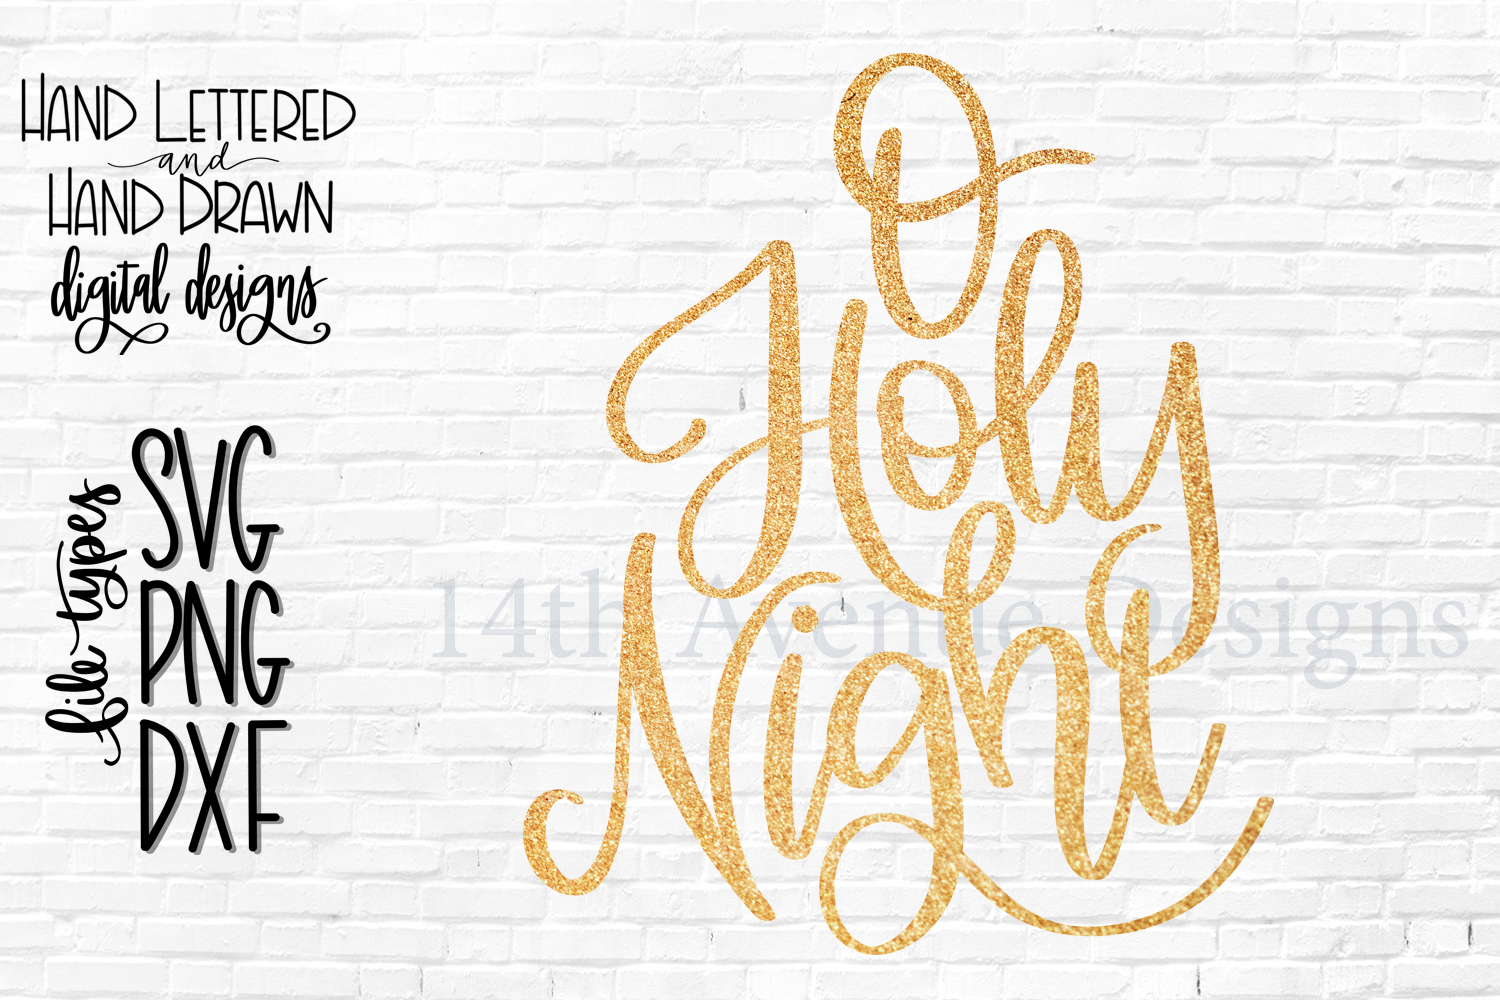 O Holy Night SVG, Christmas SVG, Hand Lettered SVG, DXF, PNG example image 2